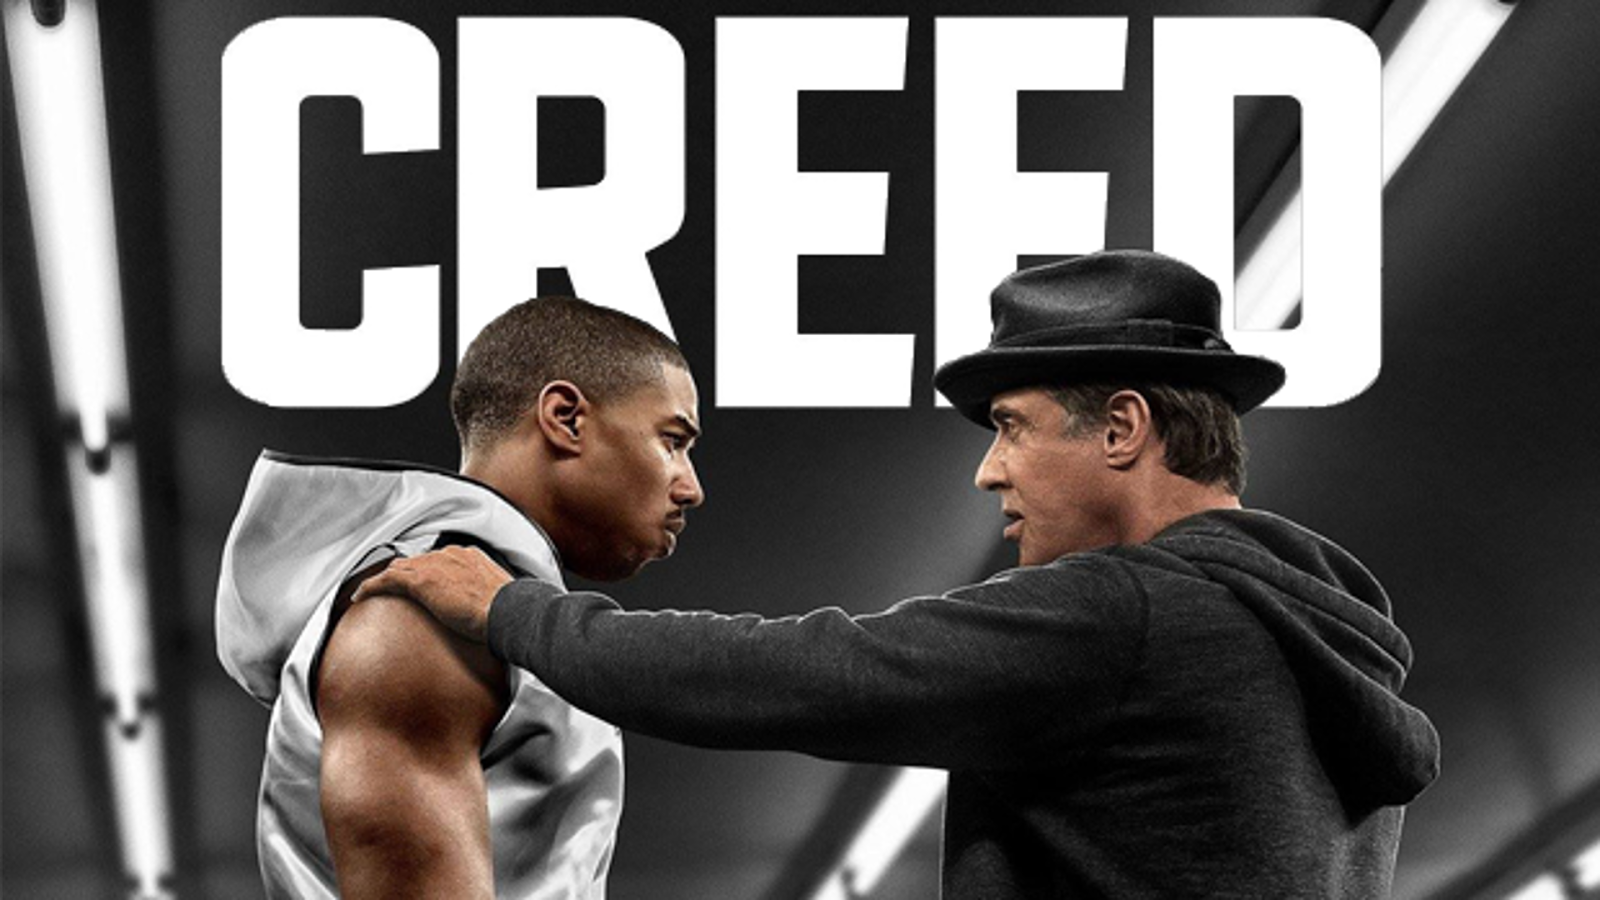 f this movie f this movie 405 creed